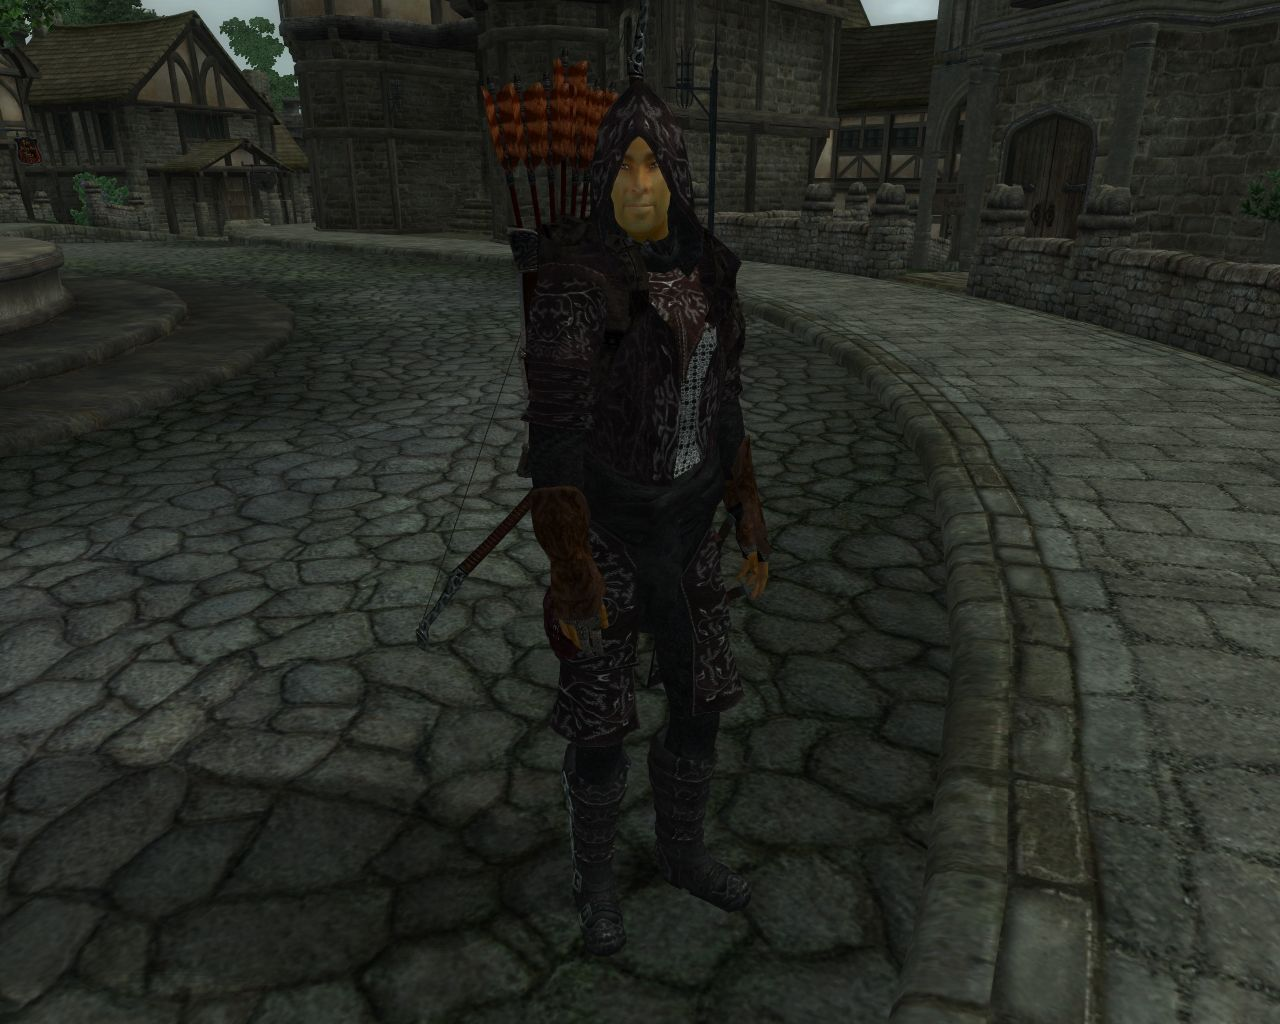 Brothel of cyrodiil oblivion mod adult gorgeous model